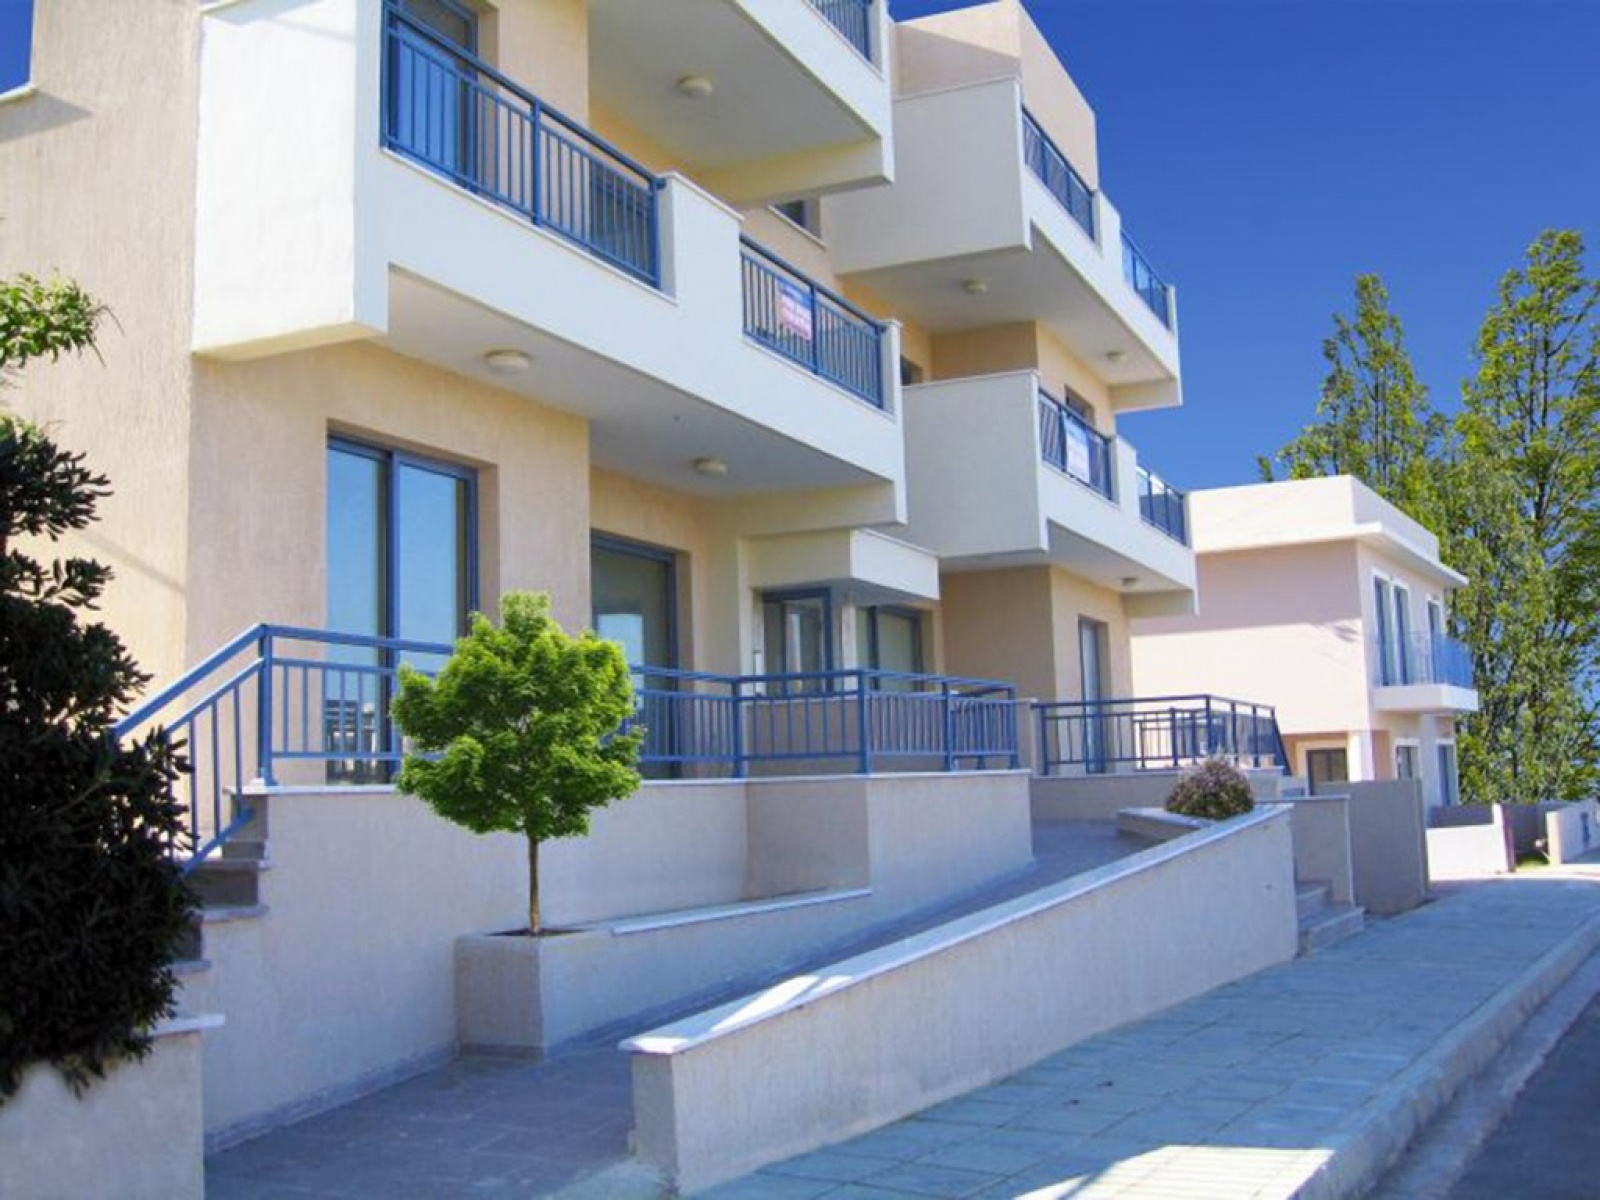 Residential Apartment - Venus Gardens - investment  opportunity (Phase D)